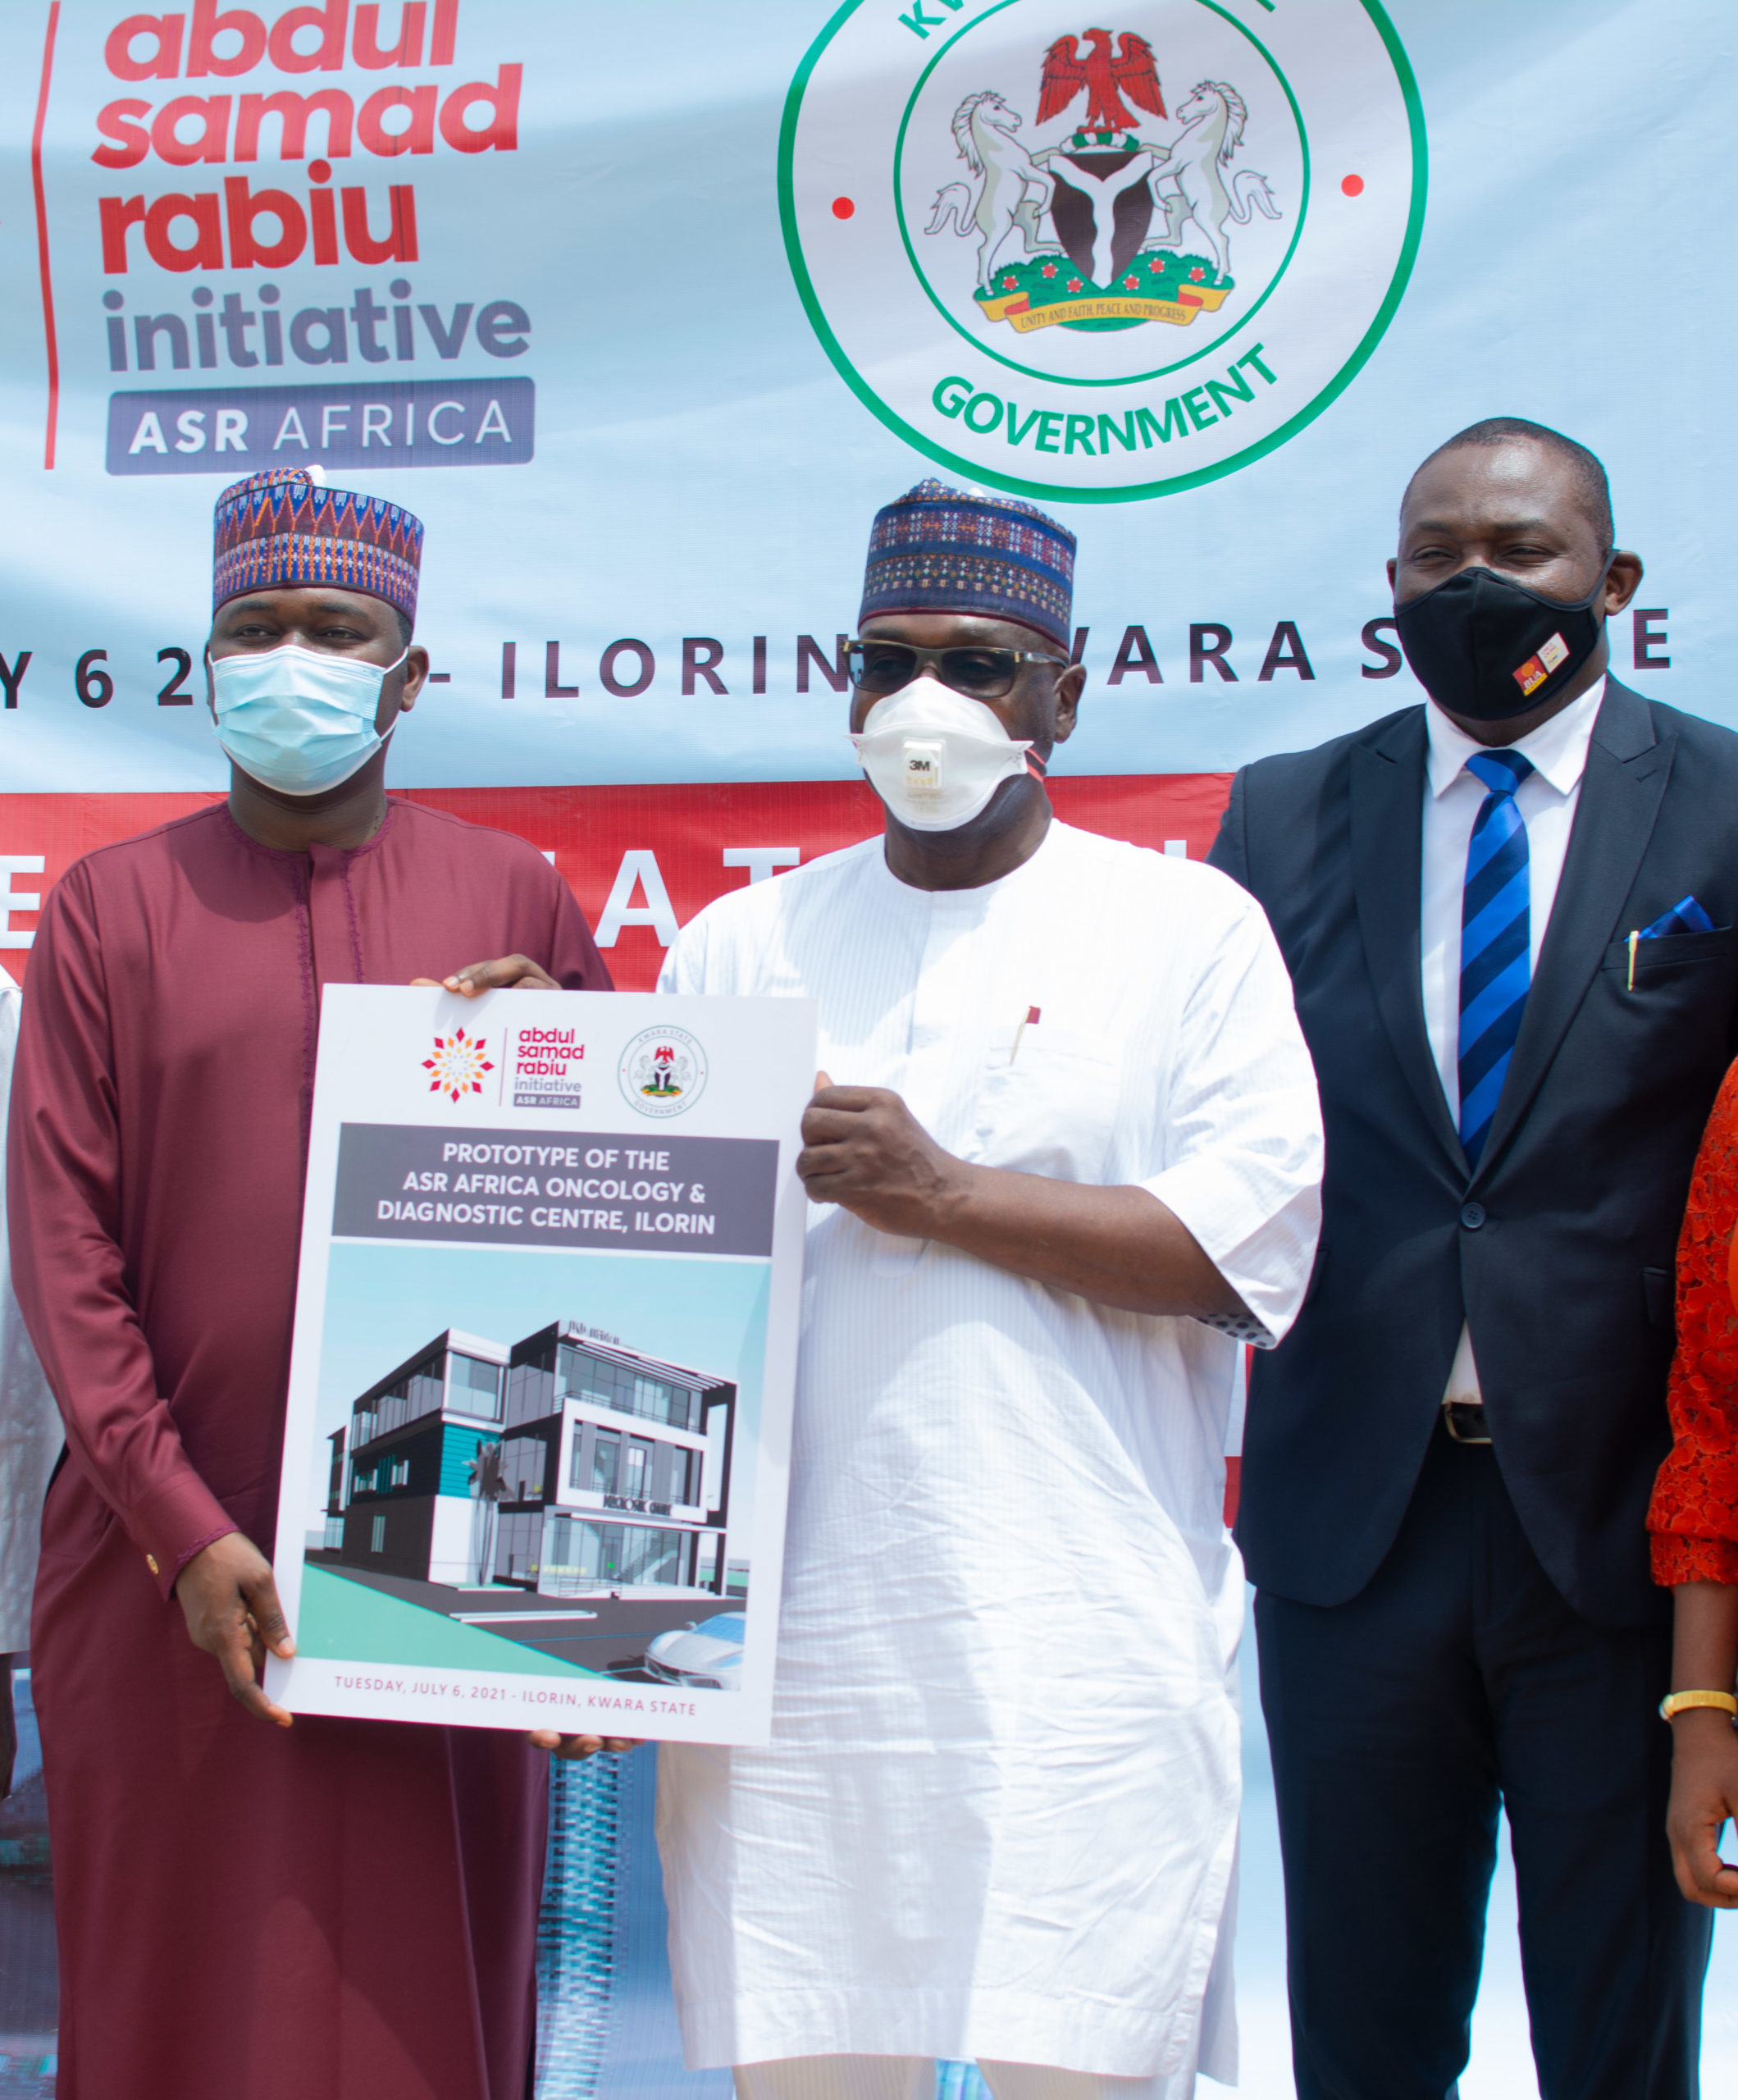 L-R: Kabiru Rabiu, Group Executive Director, BUA Group; Governor AbdulRahman AbdulRazaq of Kwara and Ubon Udoh, Managing Director, ASR Africa during the presentation of a N2.5billion grant by ASR Africa to Kwara State Government for a proposed Oncology and Diagnostic Center to be built in Ilorin, today.